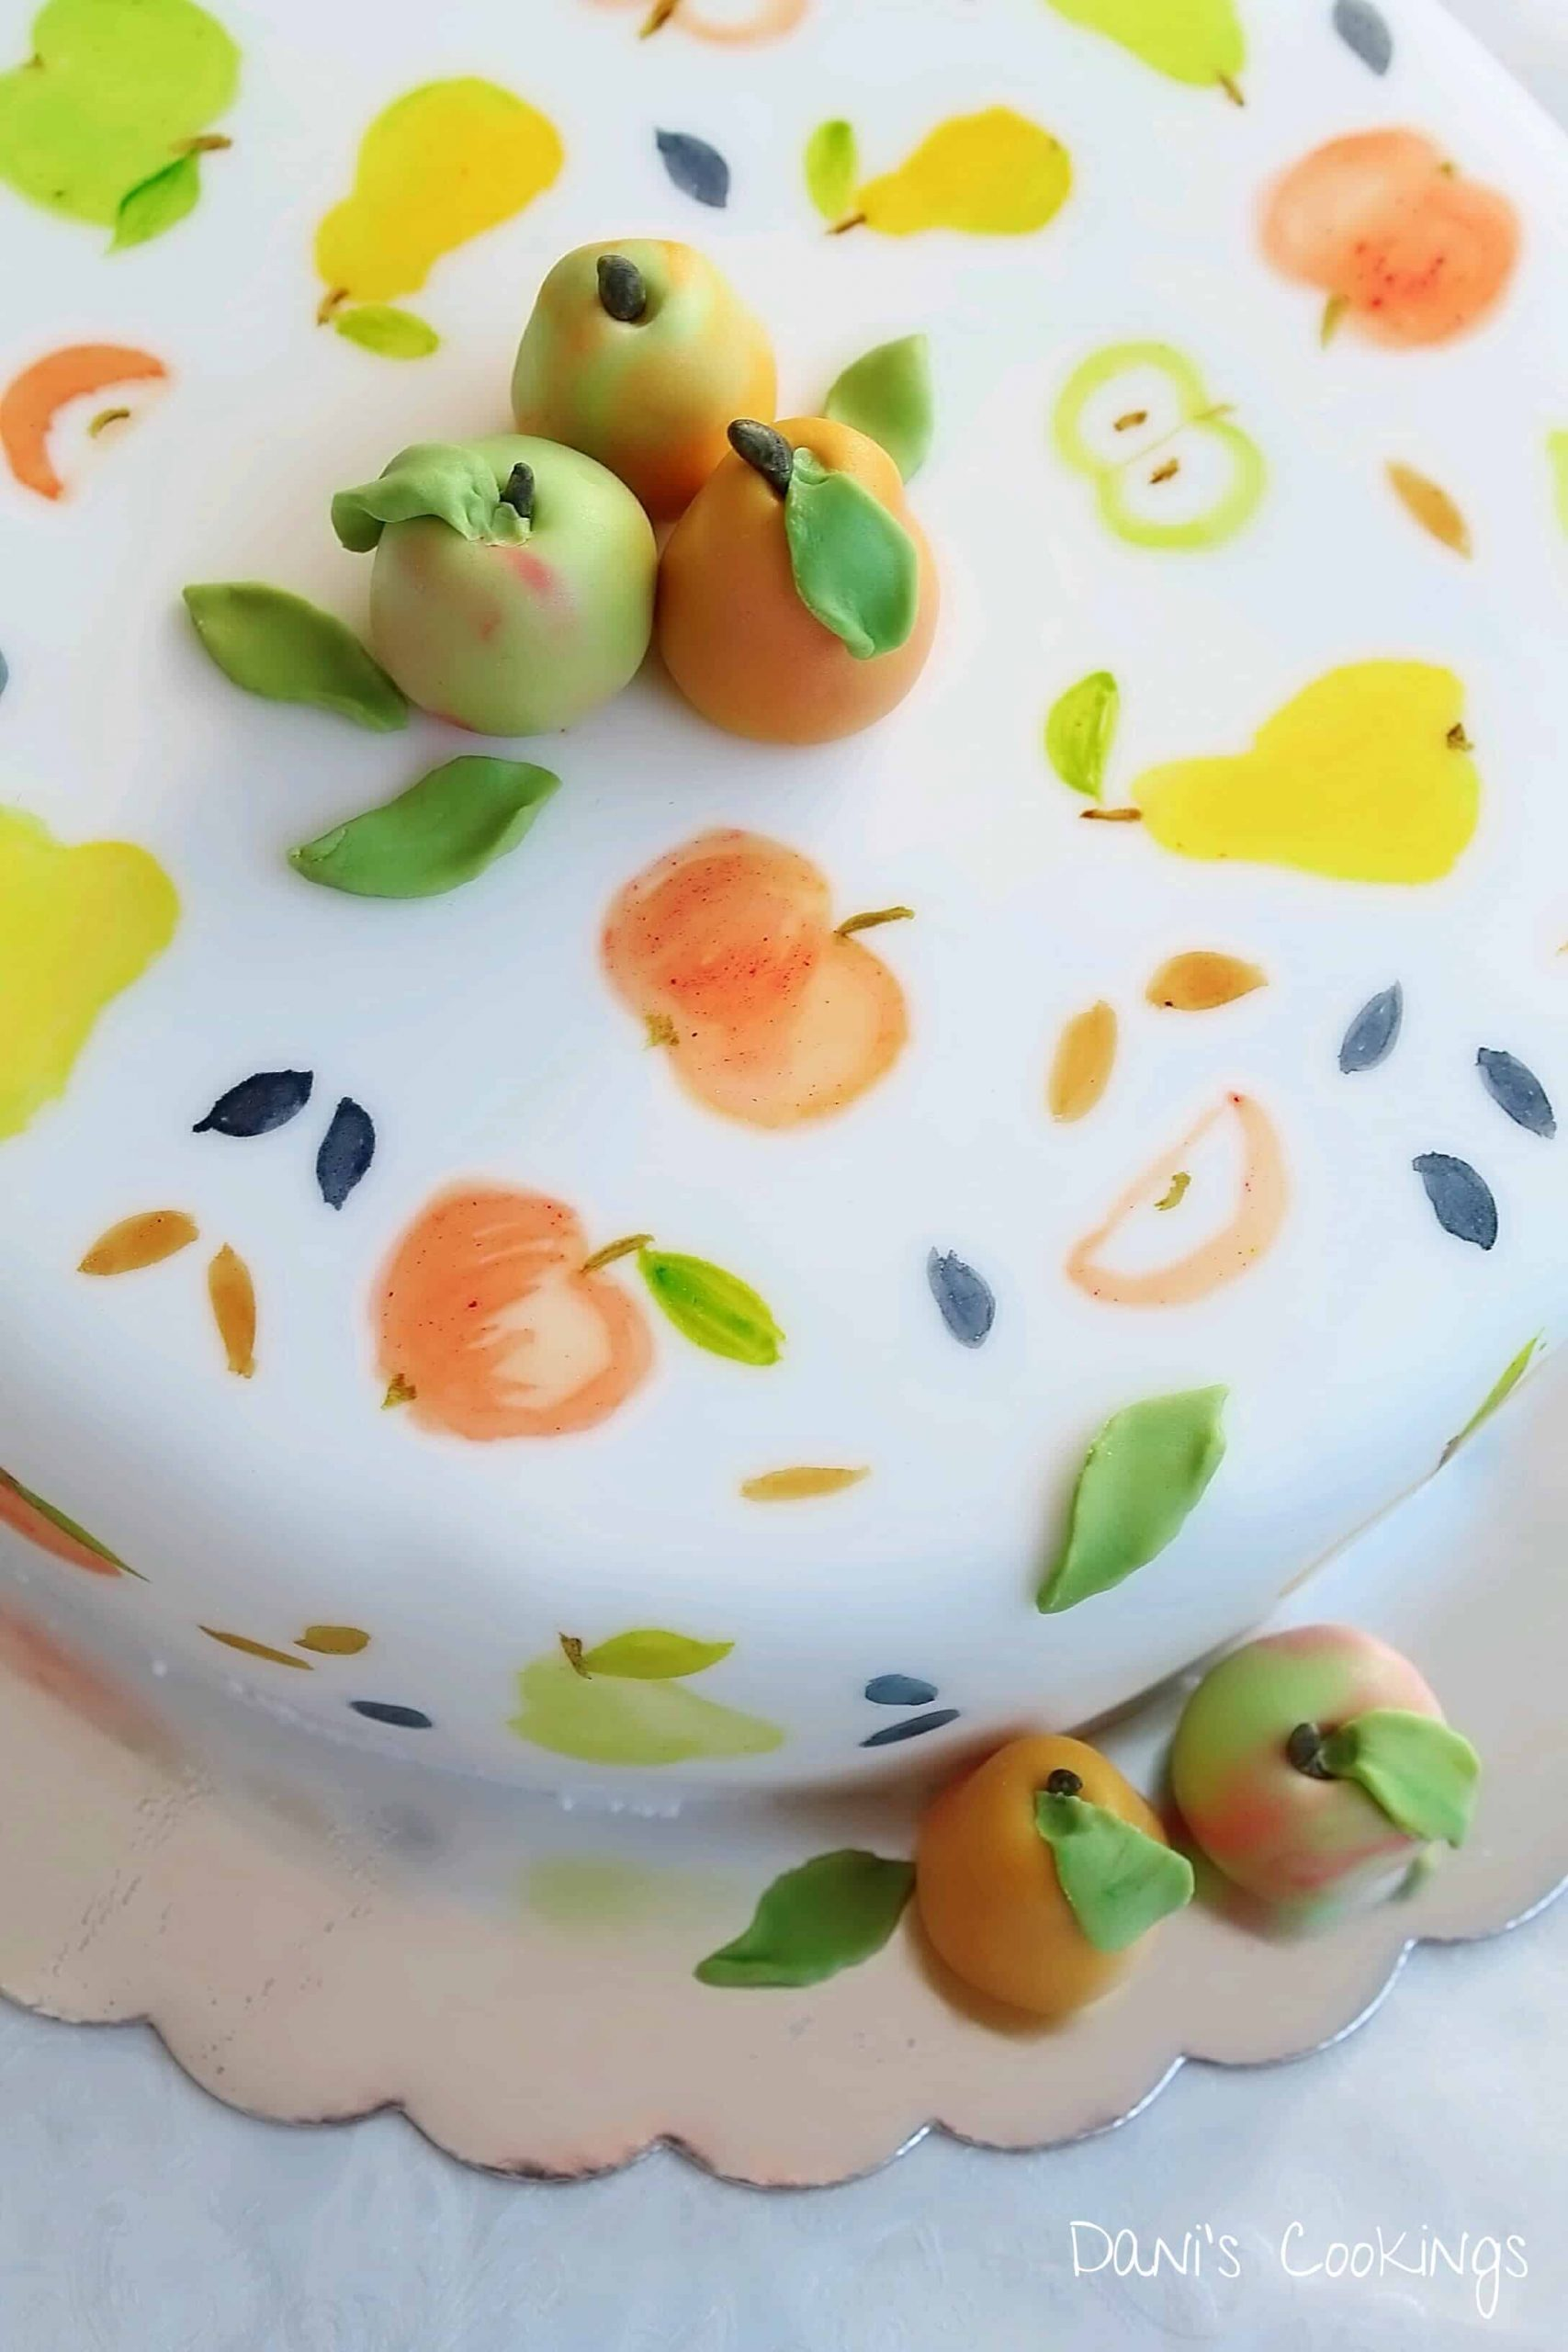 layer cake decorated with painted and fondant fruits - daniscookings.com